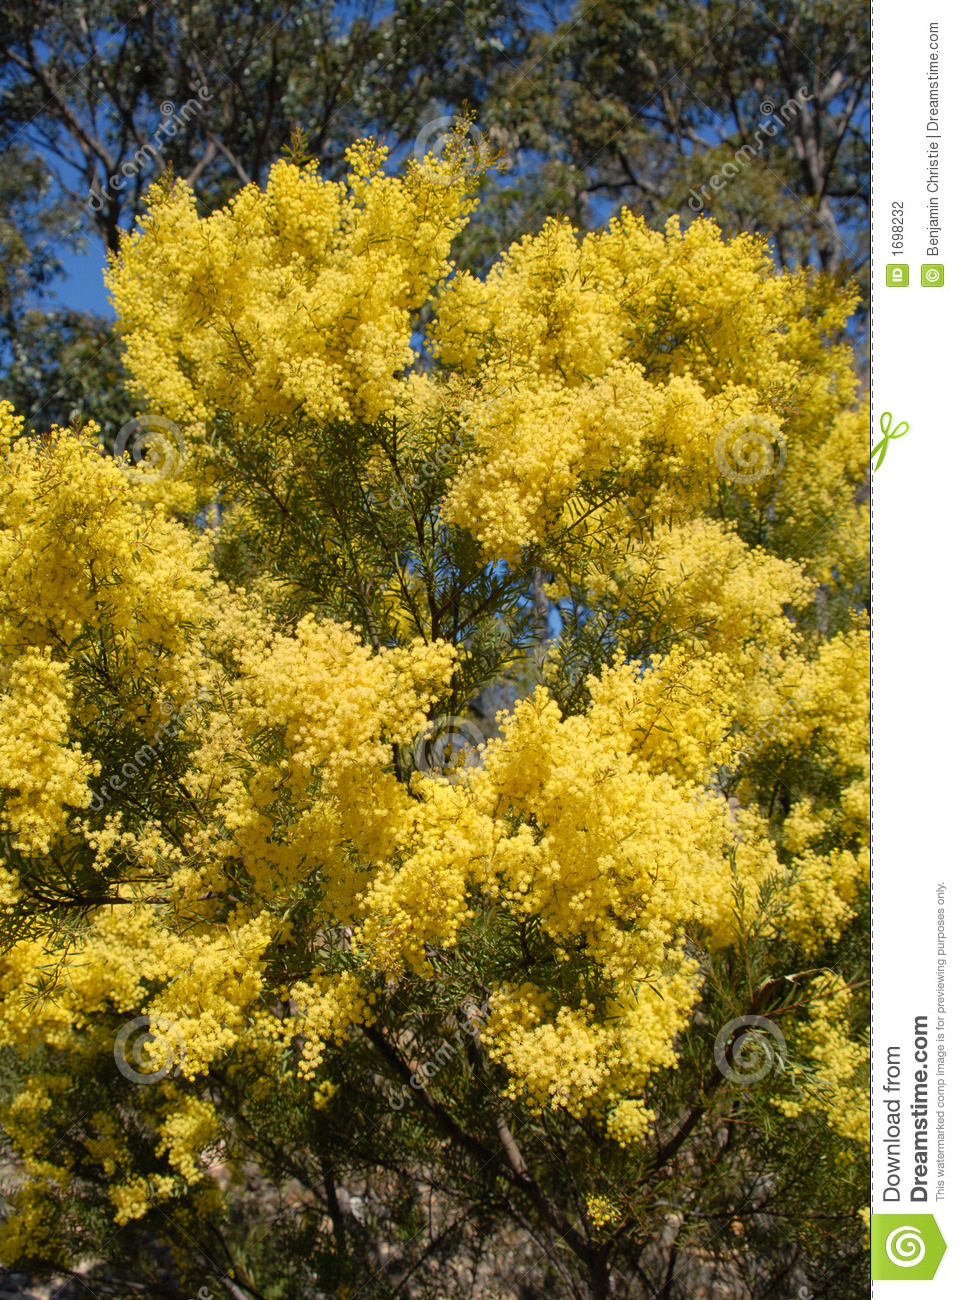 Australian wattle in spring with yellow flowering bloom stock photo australian wattle in spring with yellow flowering bloom mightylinksfo